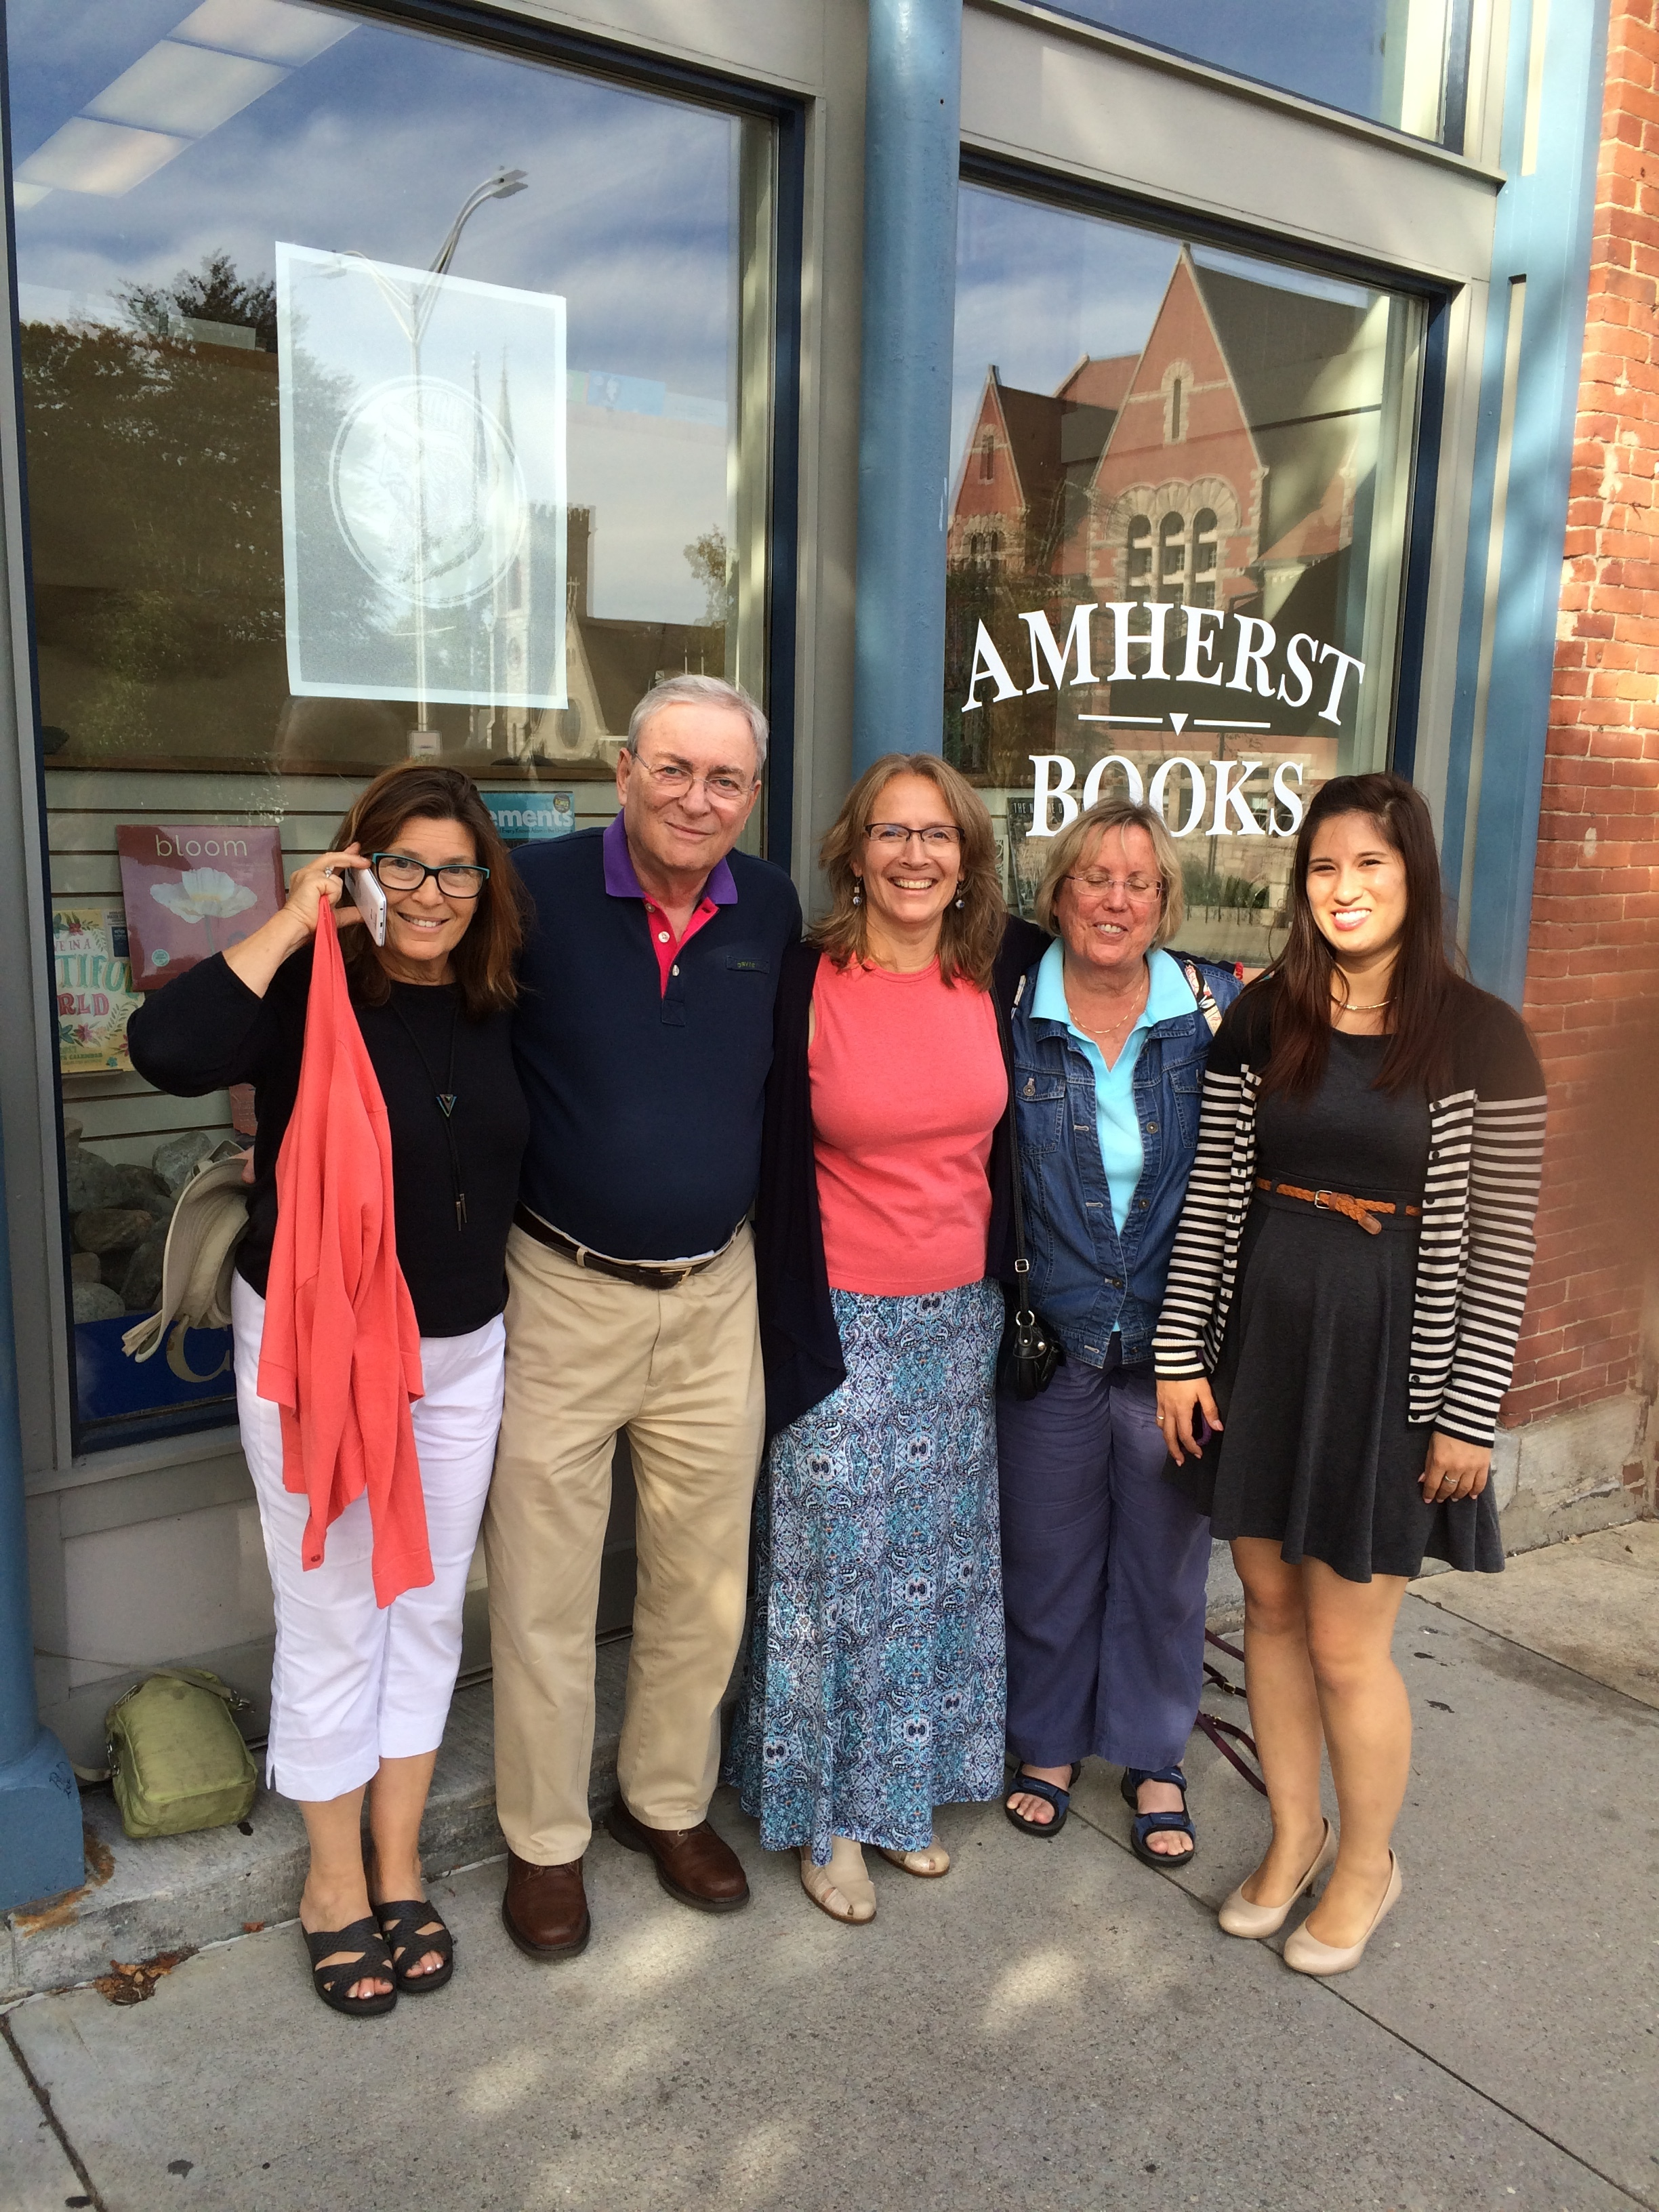 Beloved former clients visit us in Amherst from Alabama almost every summer. ( From left)  Kitty, Steve, Ali, Kathy, and Vinsula